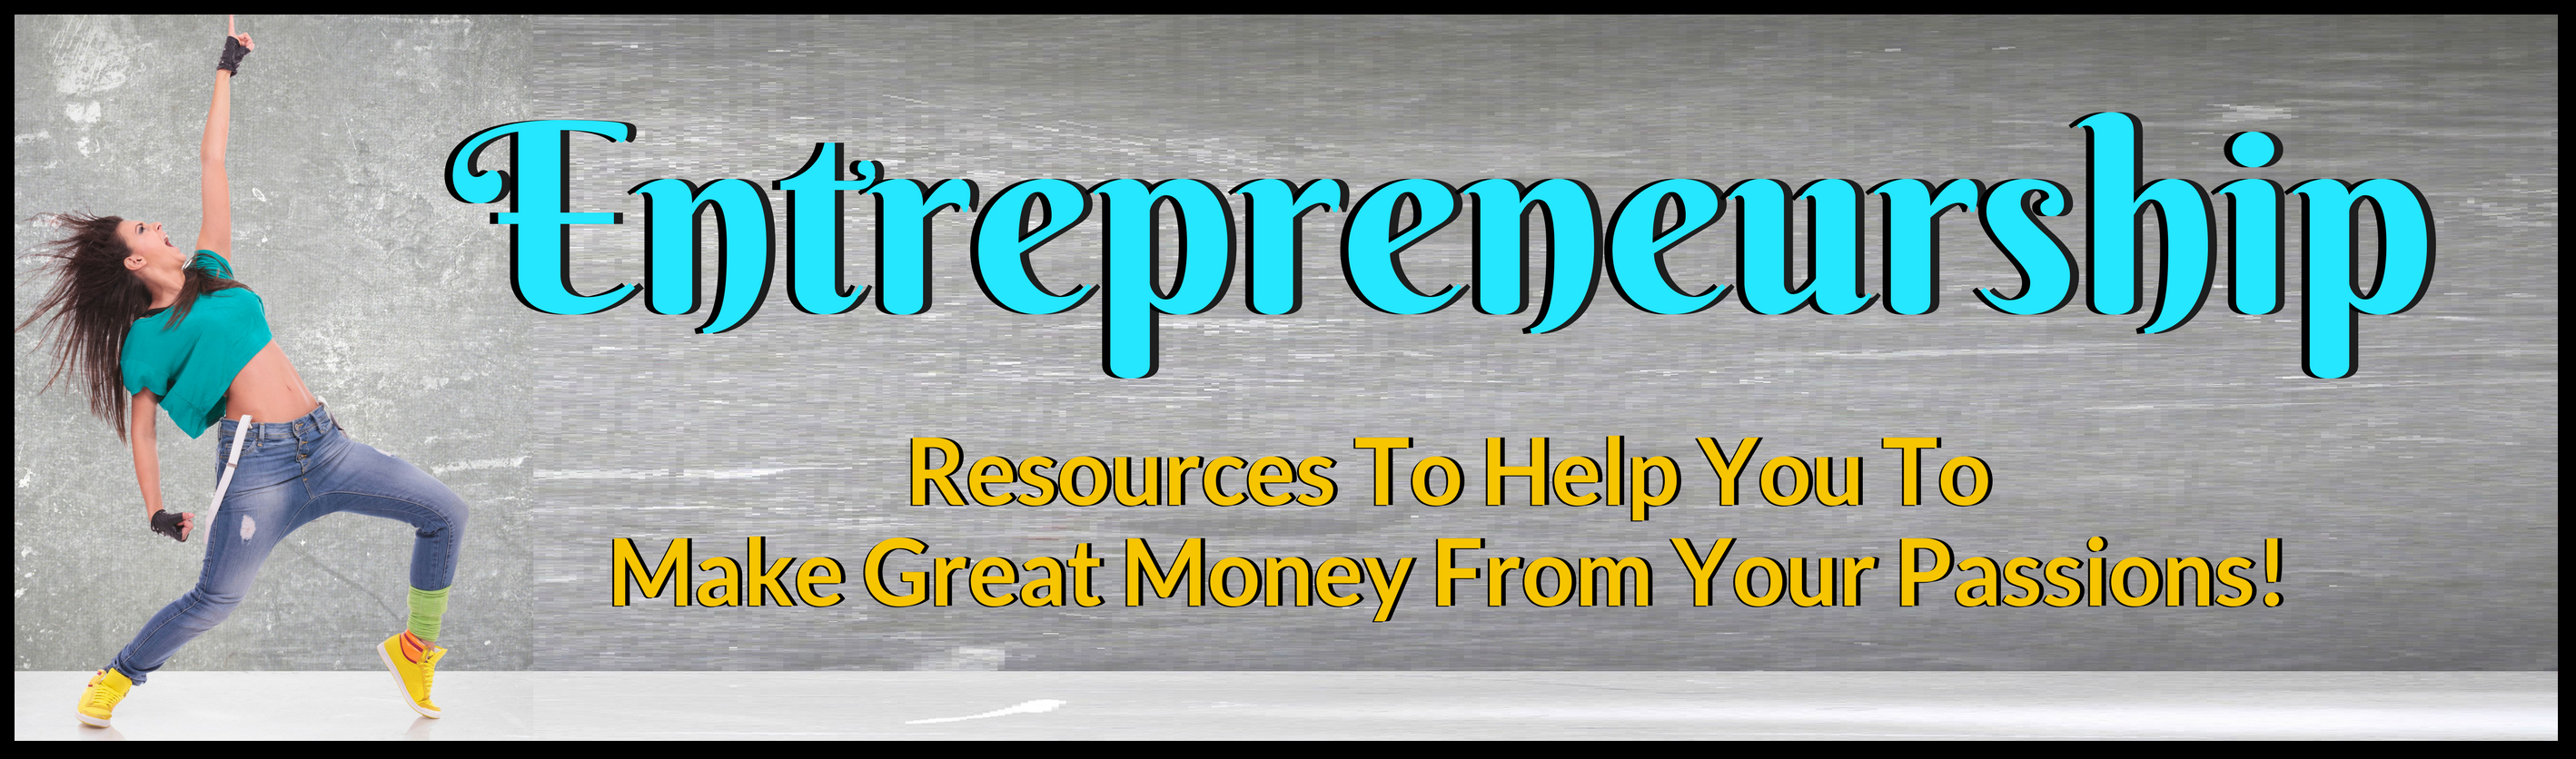 entrepreneur resources to help you make great money from your passions